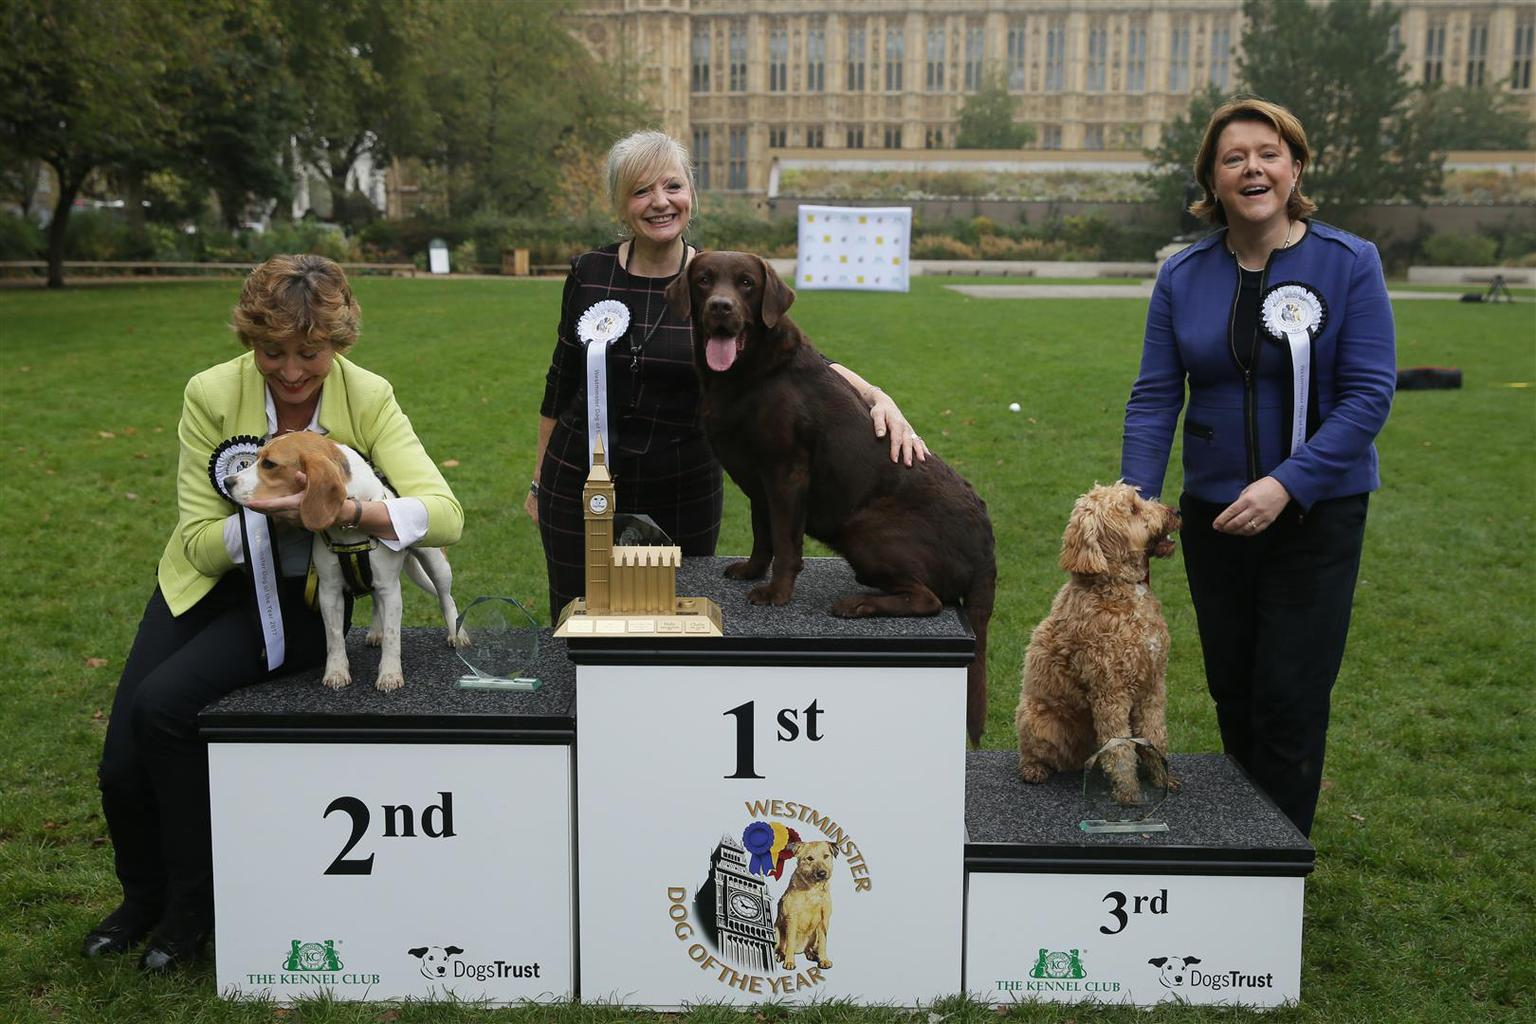 There was a worthy winner in Westminster today, as Rocky, a seven-year-old Labrador belonging to Batley and Spen Labour MP Tracy Brabin, was crowned 2017 Westminster Dog of the Year. Leading the opposition in second place was Bonnie, a Beagel owned by Rebecca Pow MP for Taunton Deane, with a place in the trophy cabinet awarded to Ted, a Cockapoo owned by Maria Miller MP for Basingstoke in third. Tags: Beagle cckapoo dog Labrador Retriever Westminster Dog of the Year Finalists